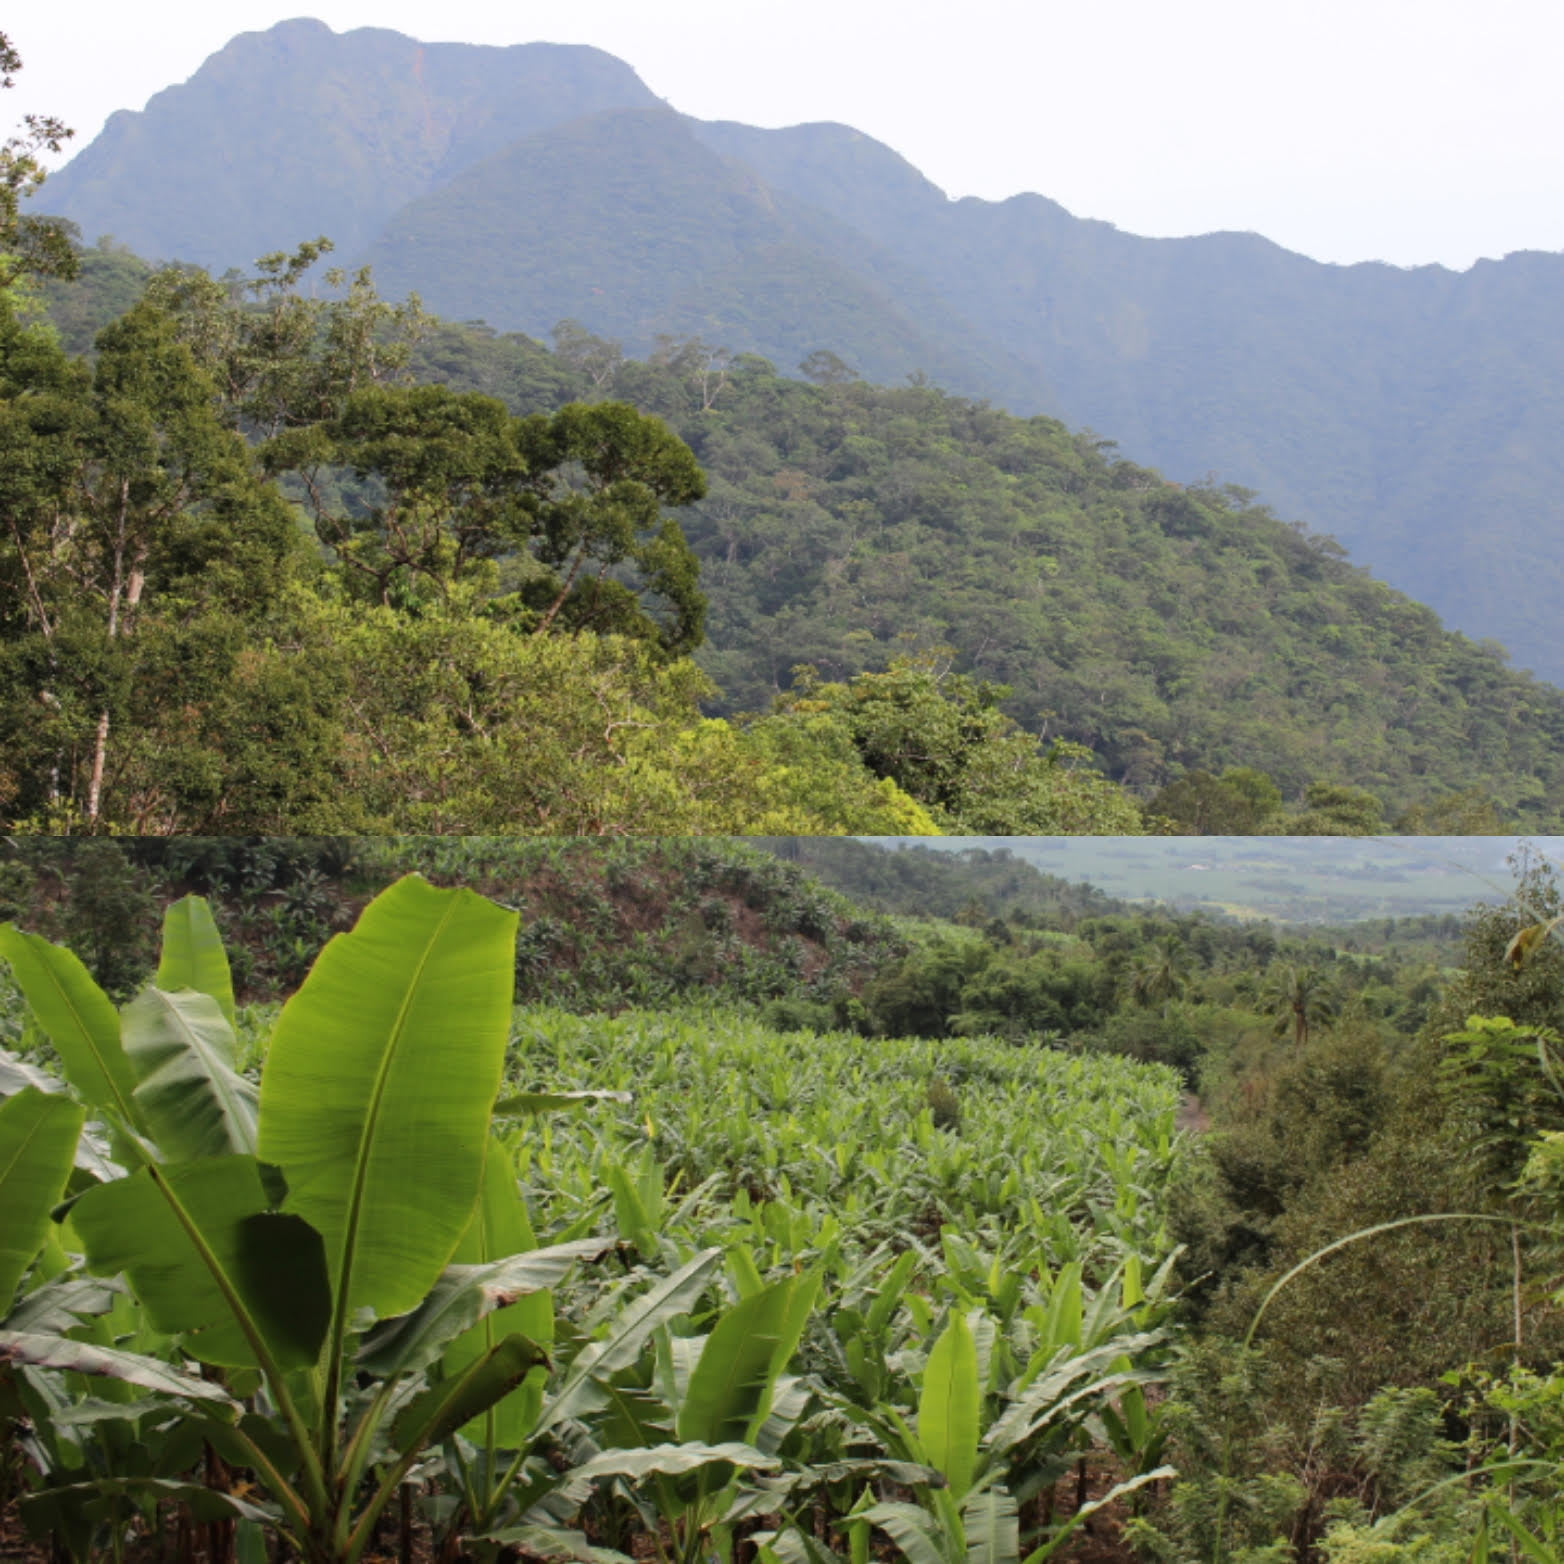 tropical forests have been converted into plantations (palm oil, banana, fruit trees